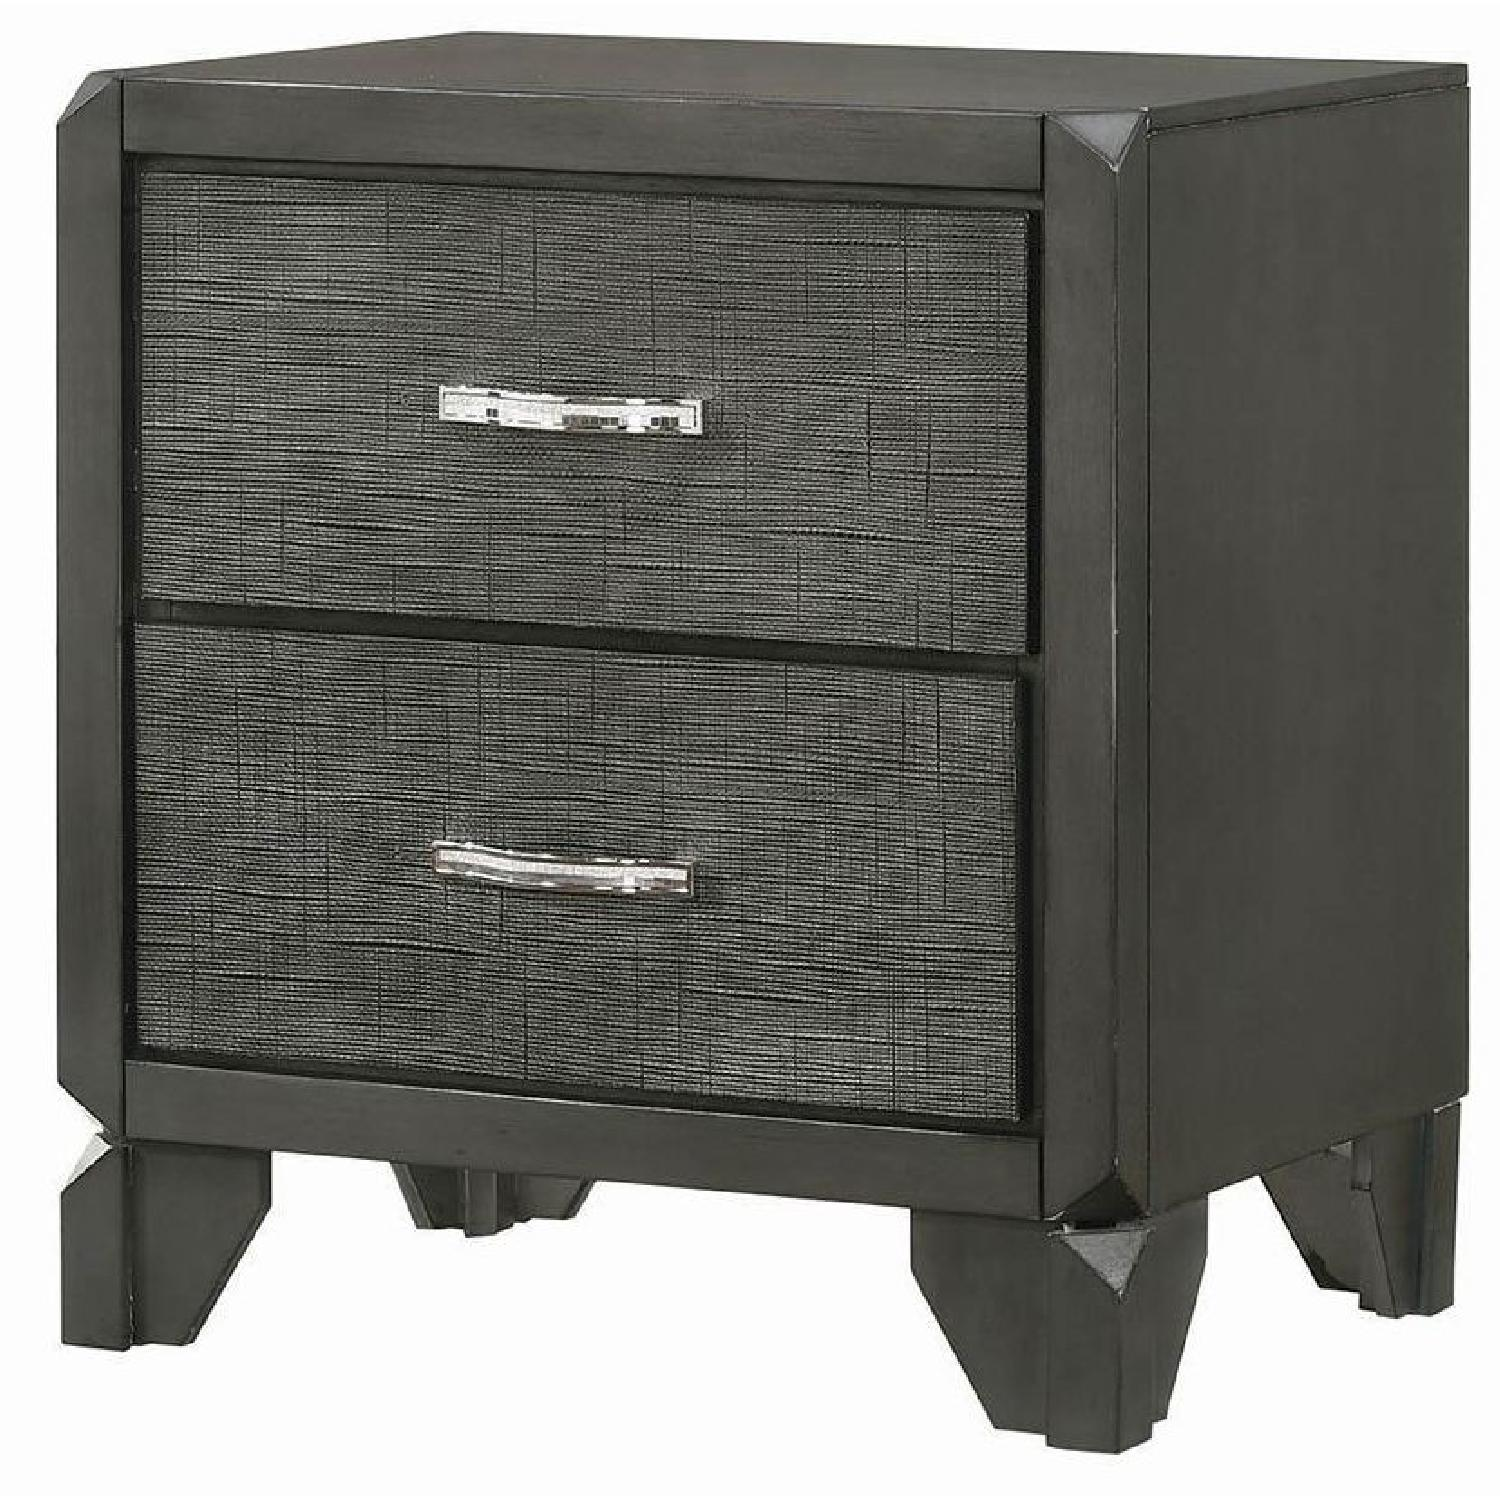 2-Drawer Nightstand in Caviar Finish w/ Woven Texture Front - image-5